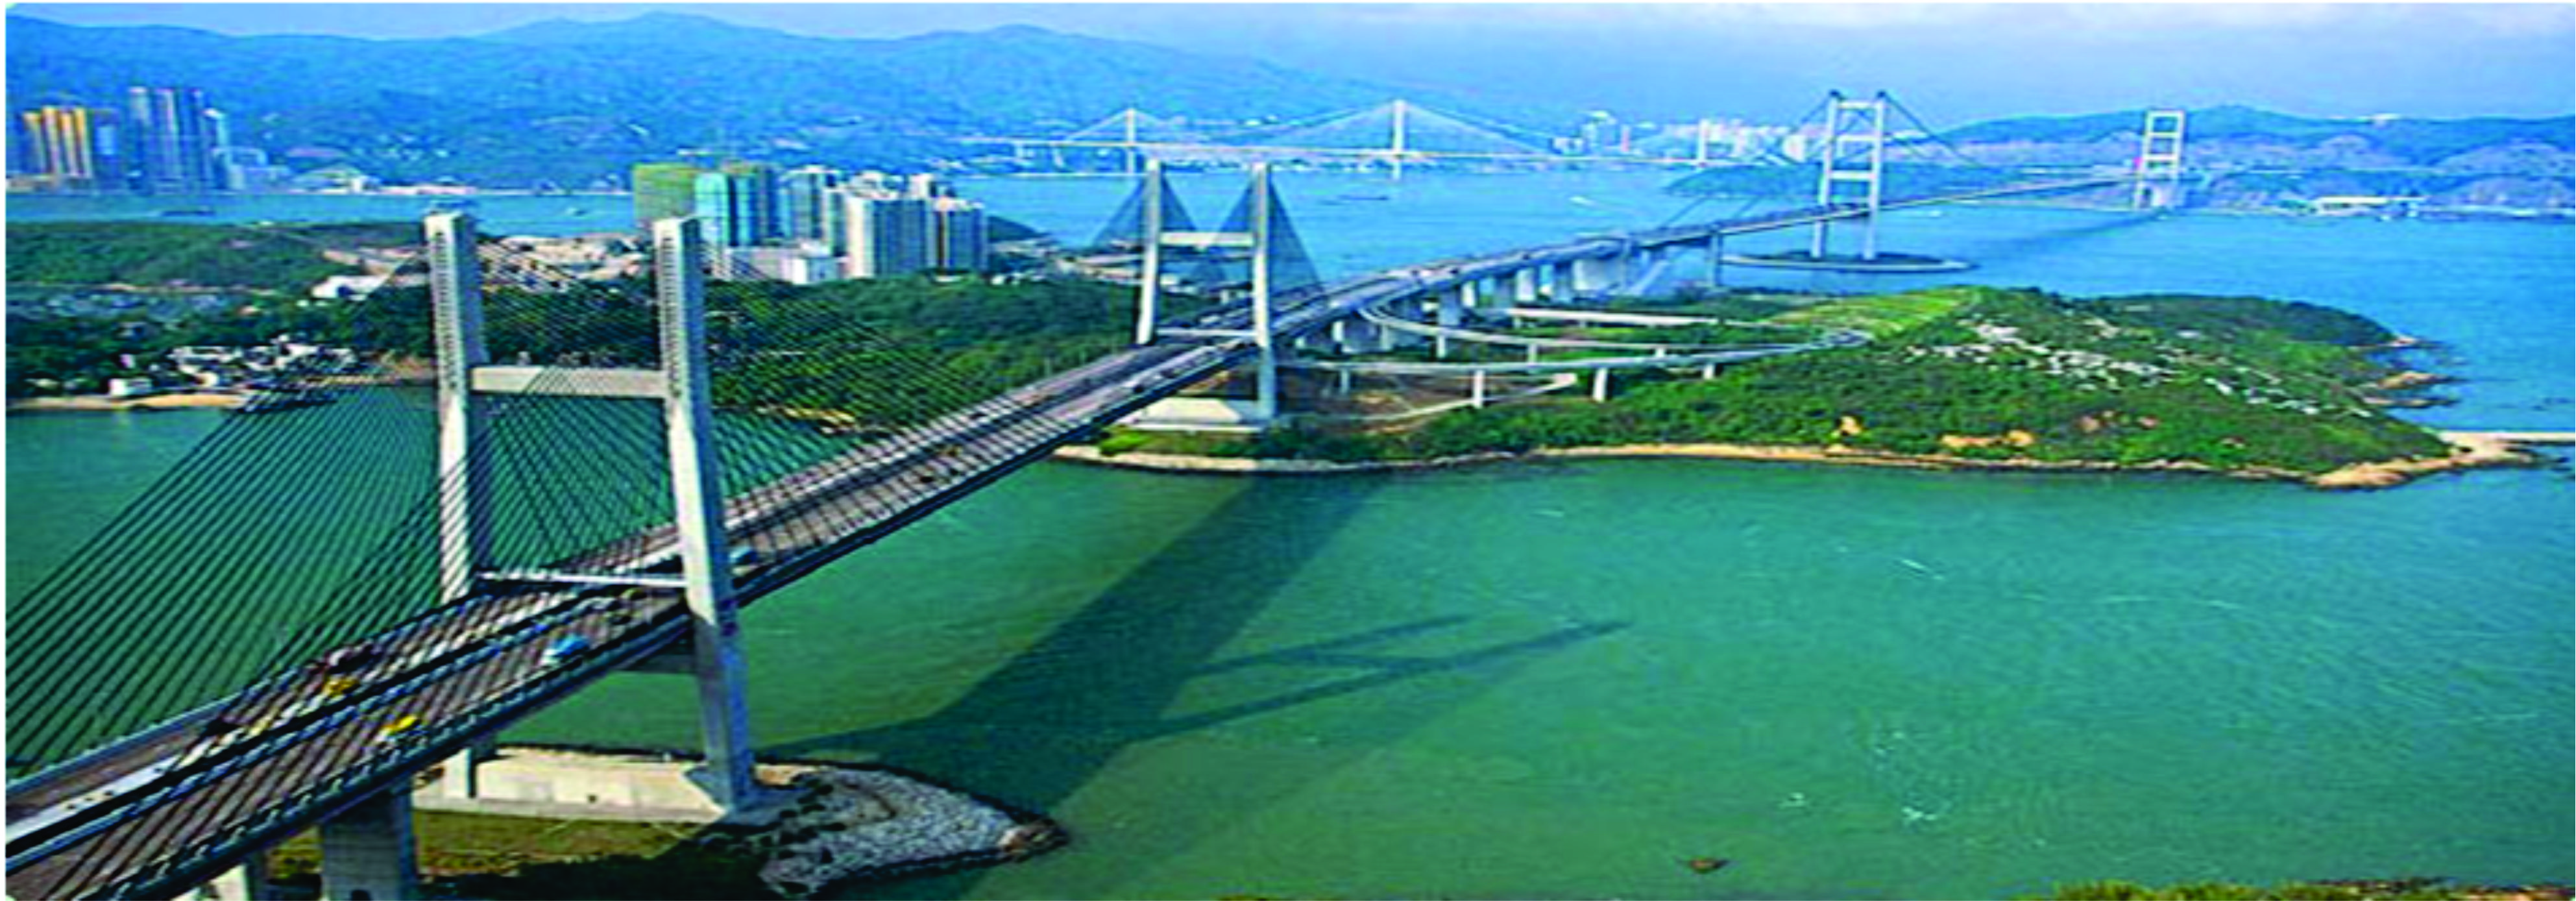 tsing-ma-bridge-hong-kong1